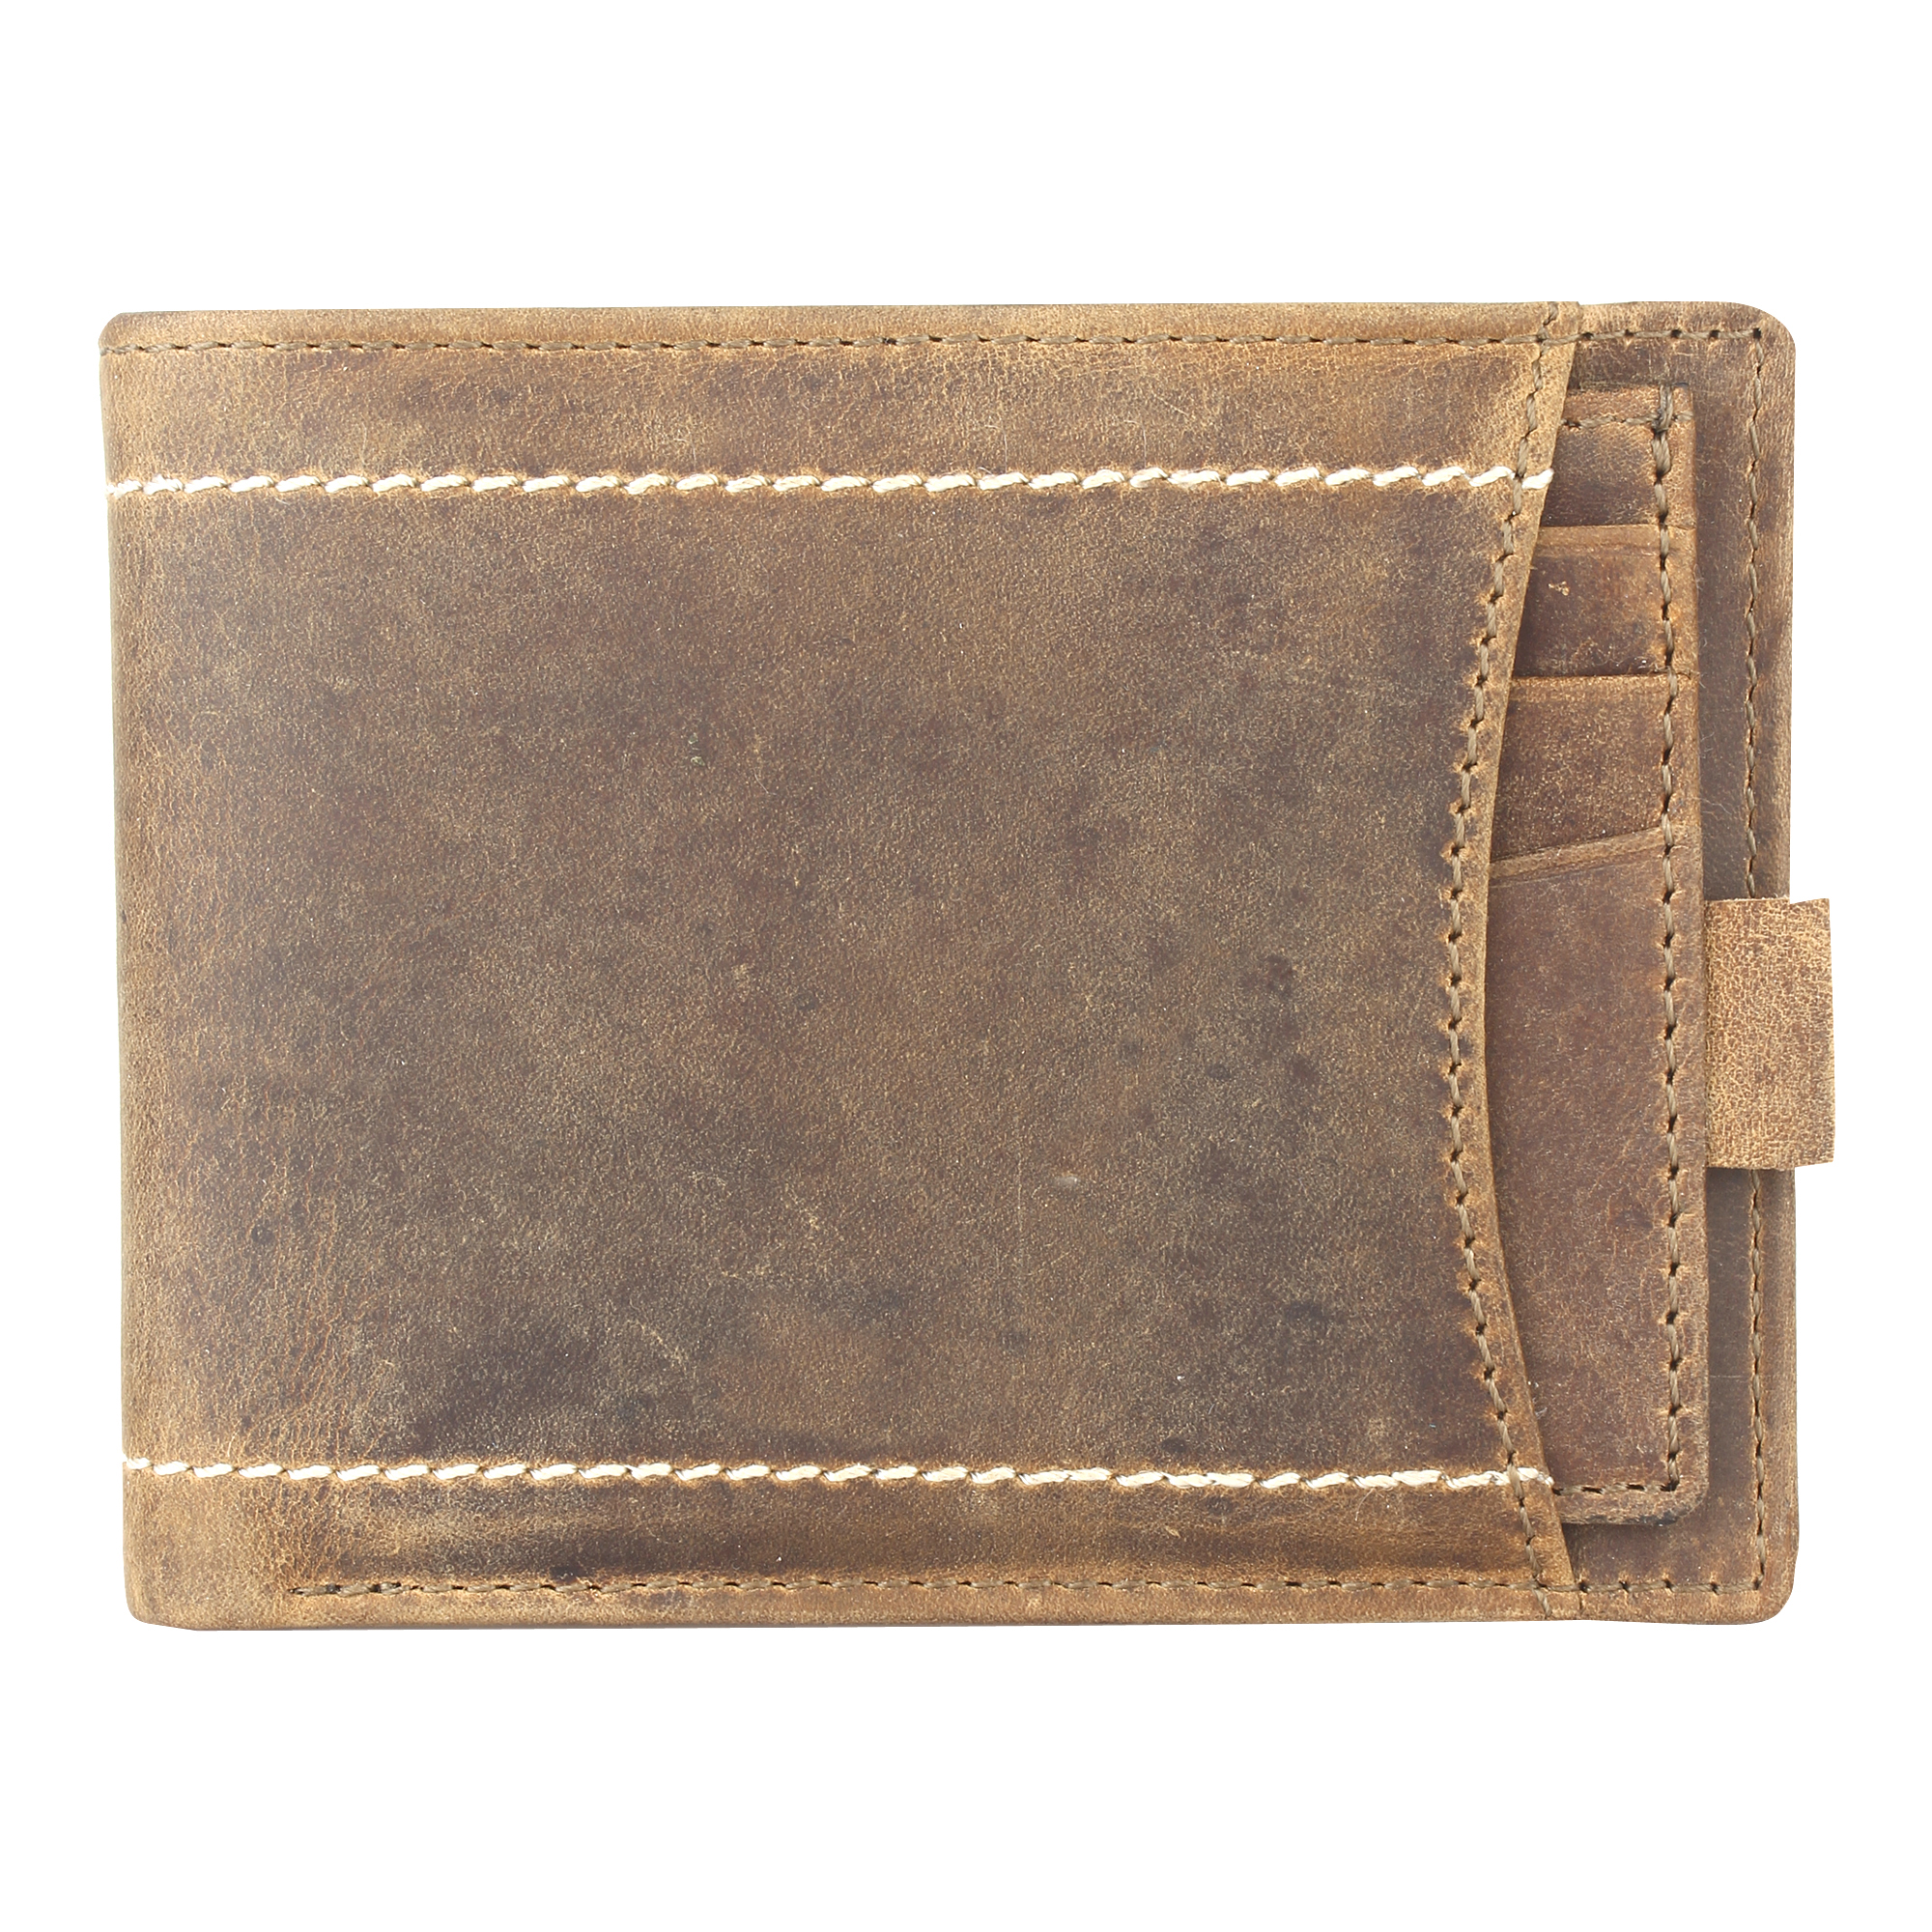 Leather Wallets Manufacturers in Delaware, Leather Wallets Suppliers in Delaware, Leather Wallets Wholesalers in Delaware, Leather Wallets Traders in Delaware, custom leather wallet manufacturers in Delaware, Leathe